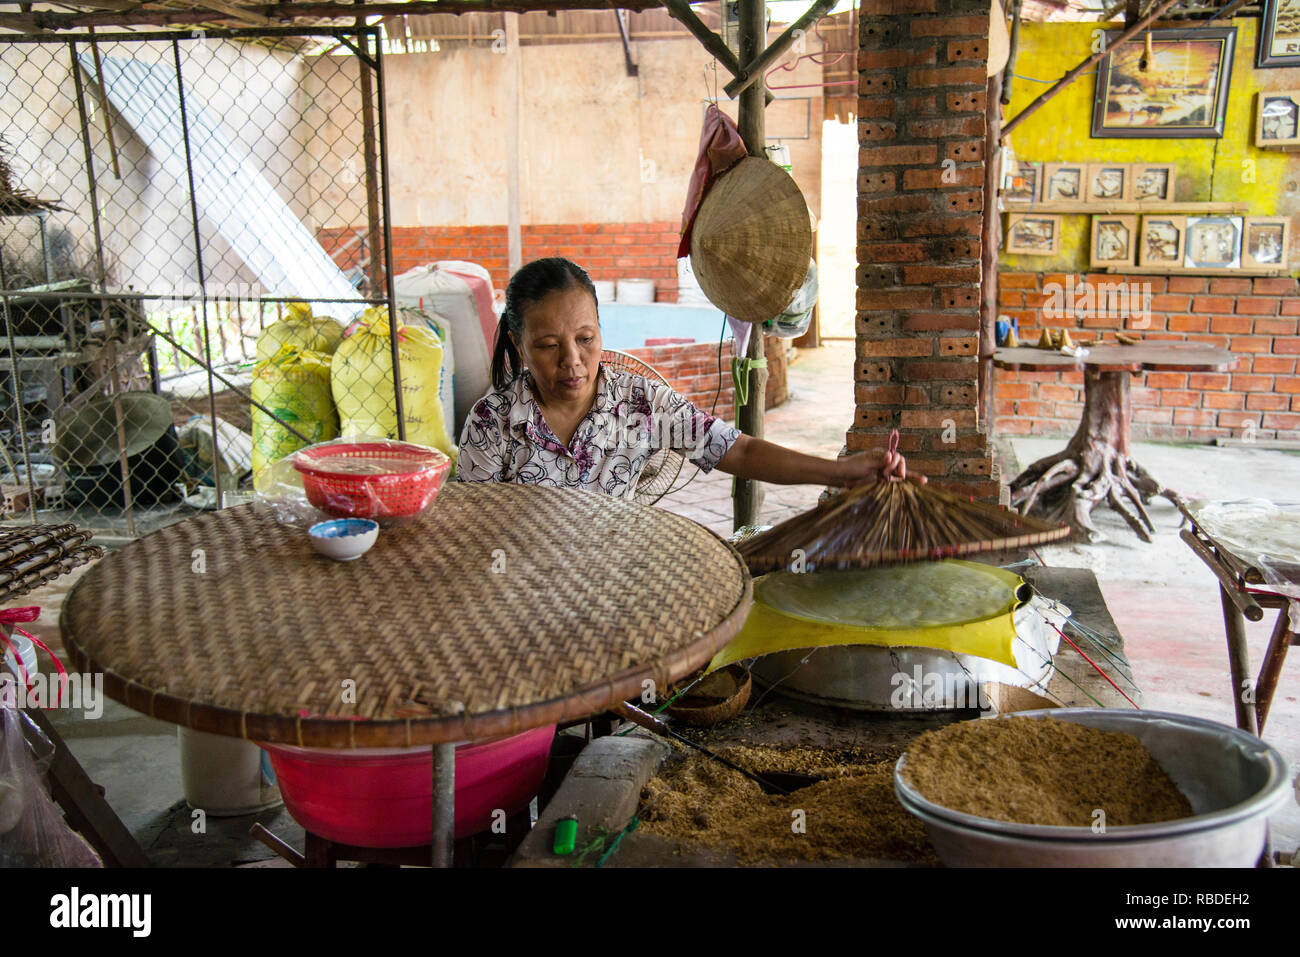 Handmade Rice Paper Wrappers in Vietnam - Stock Image